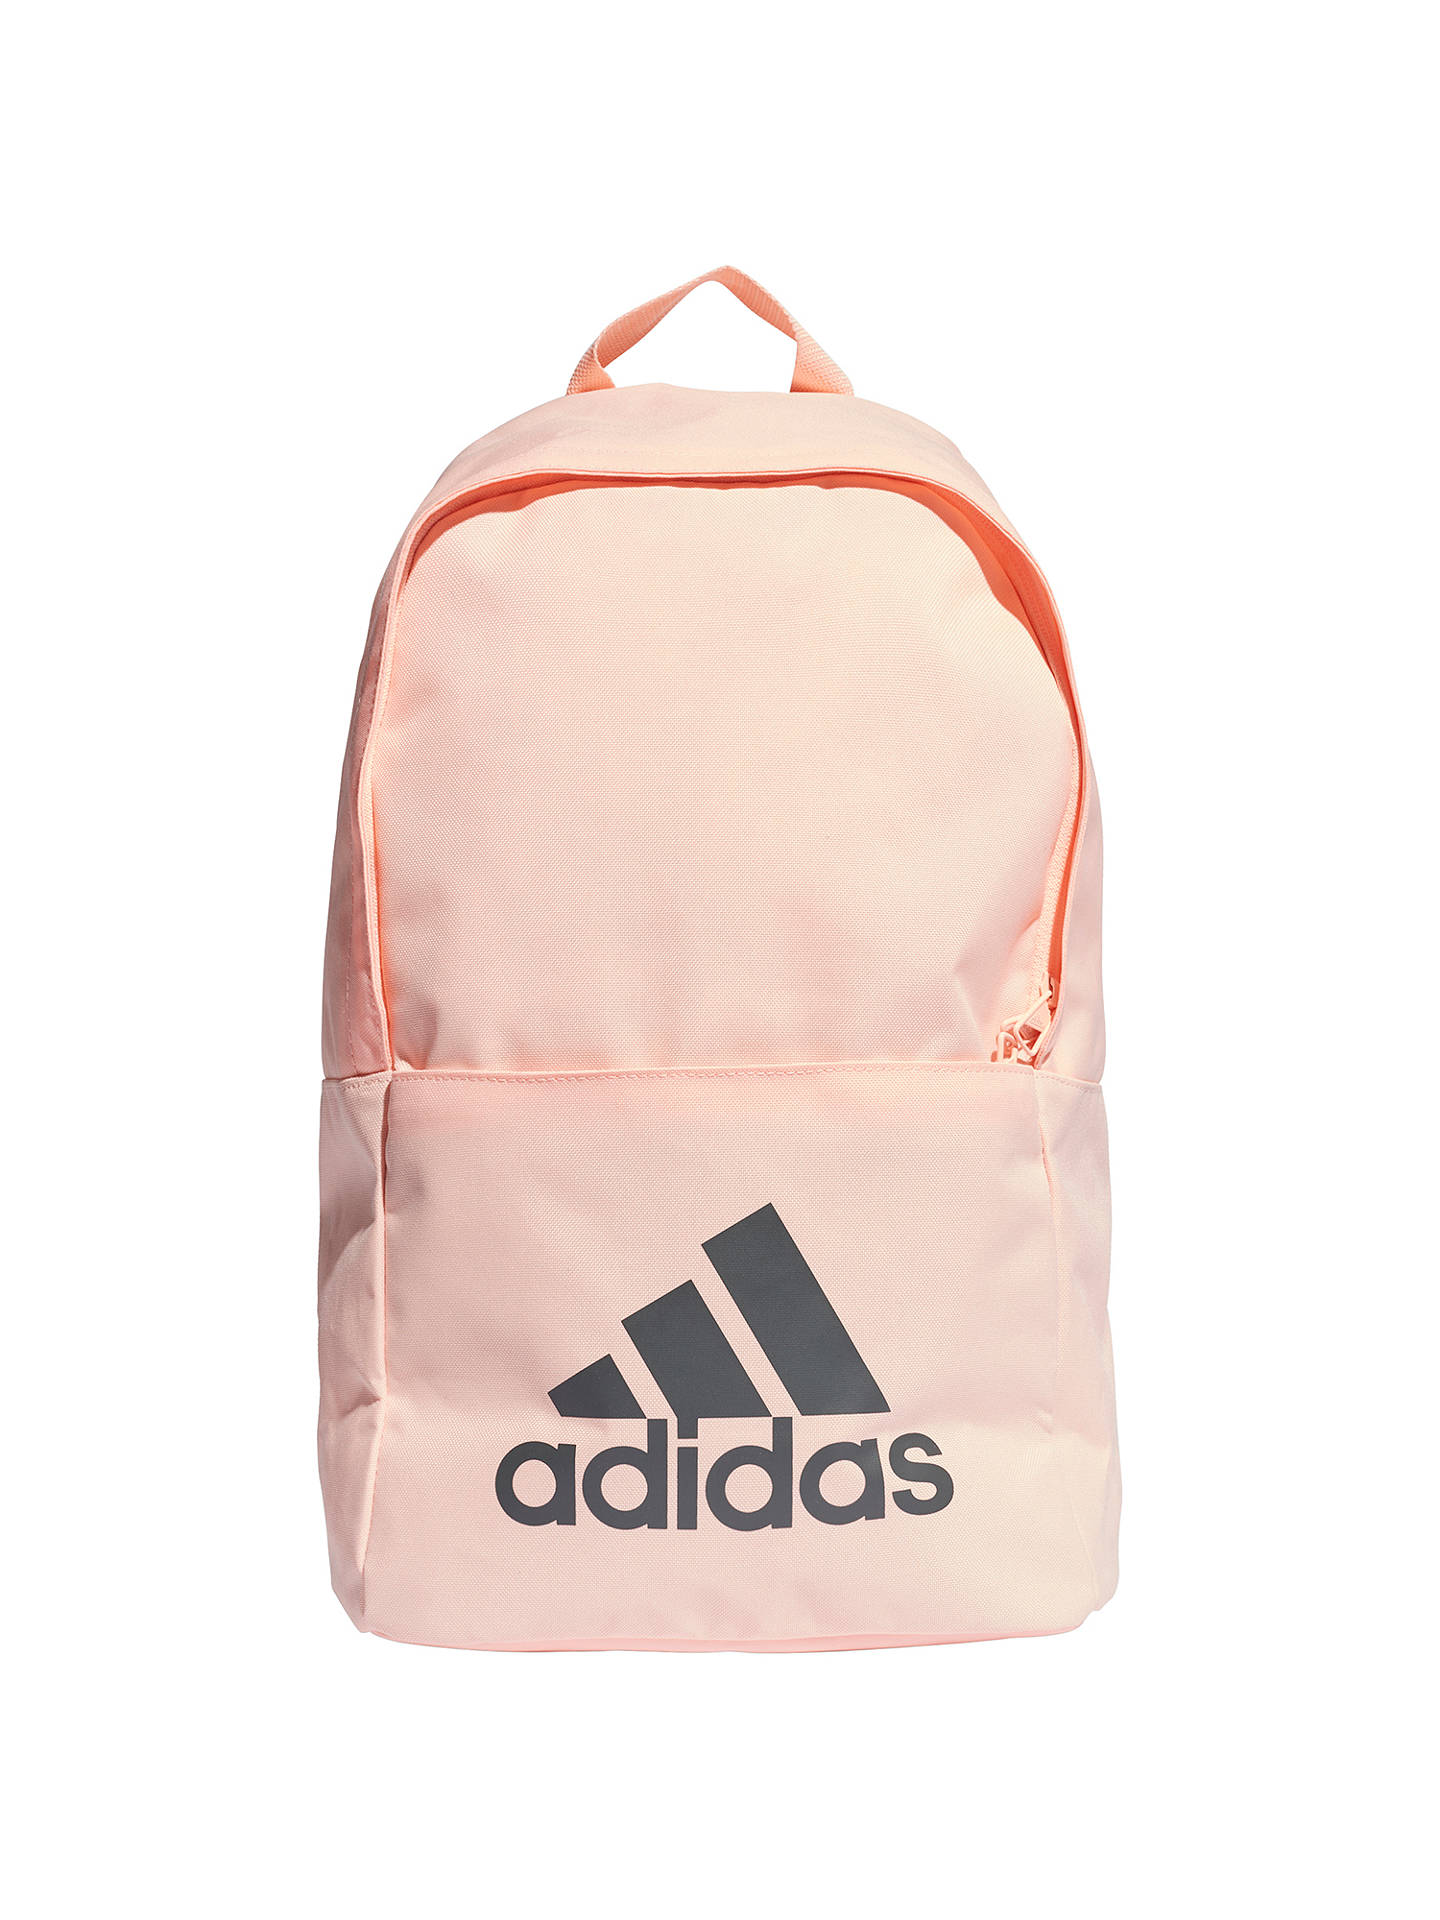 adidas Classic Backpack at John Lewis   Partners 2401fc3917f51